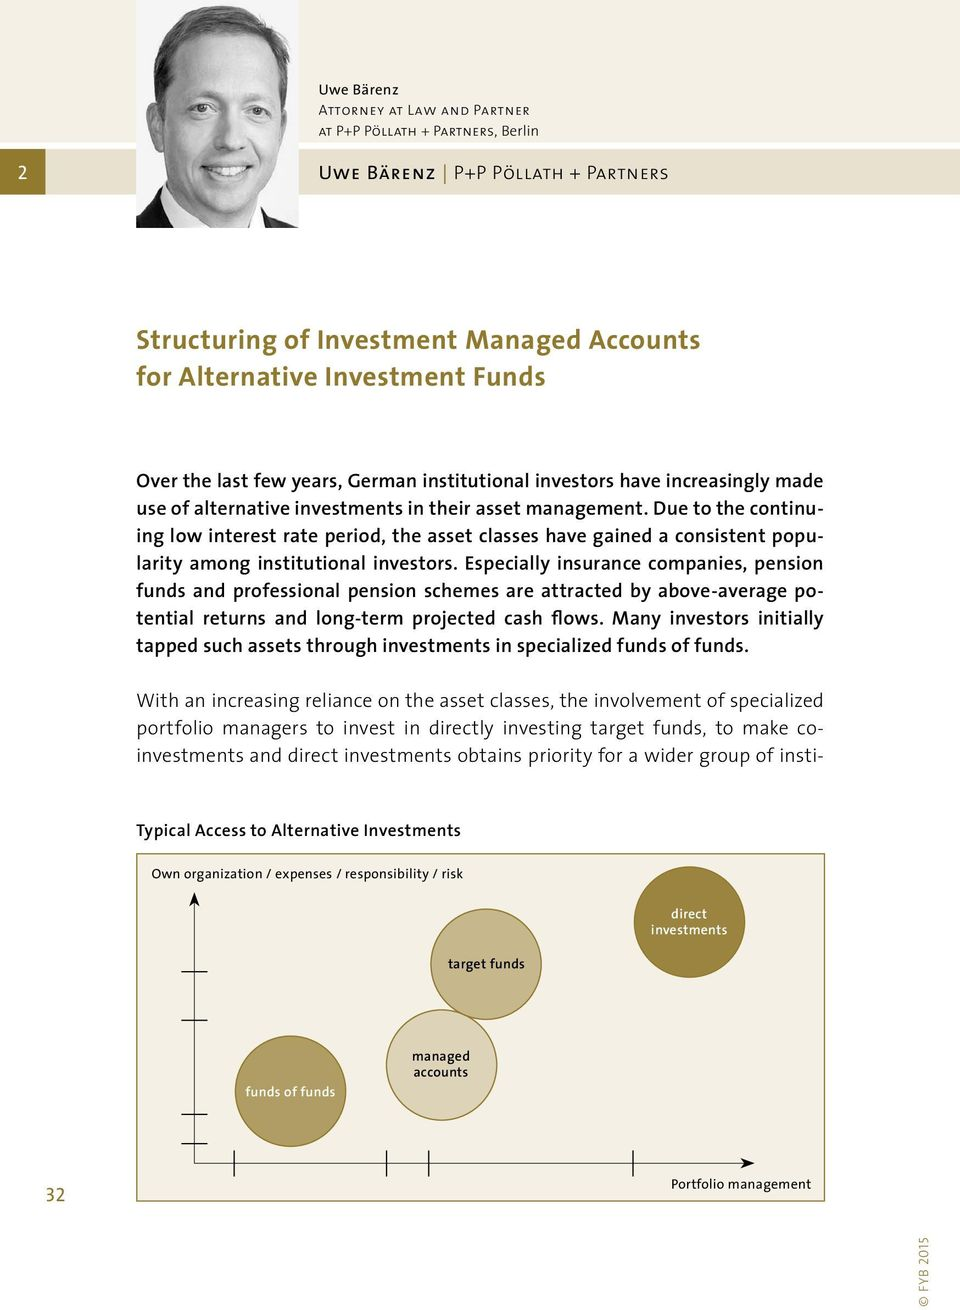 Due to the continuing low interest rate period, the asset classes have gained a consistent popularity among institutional investors.